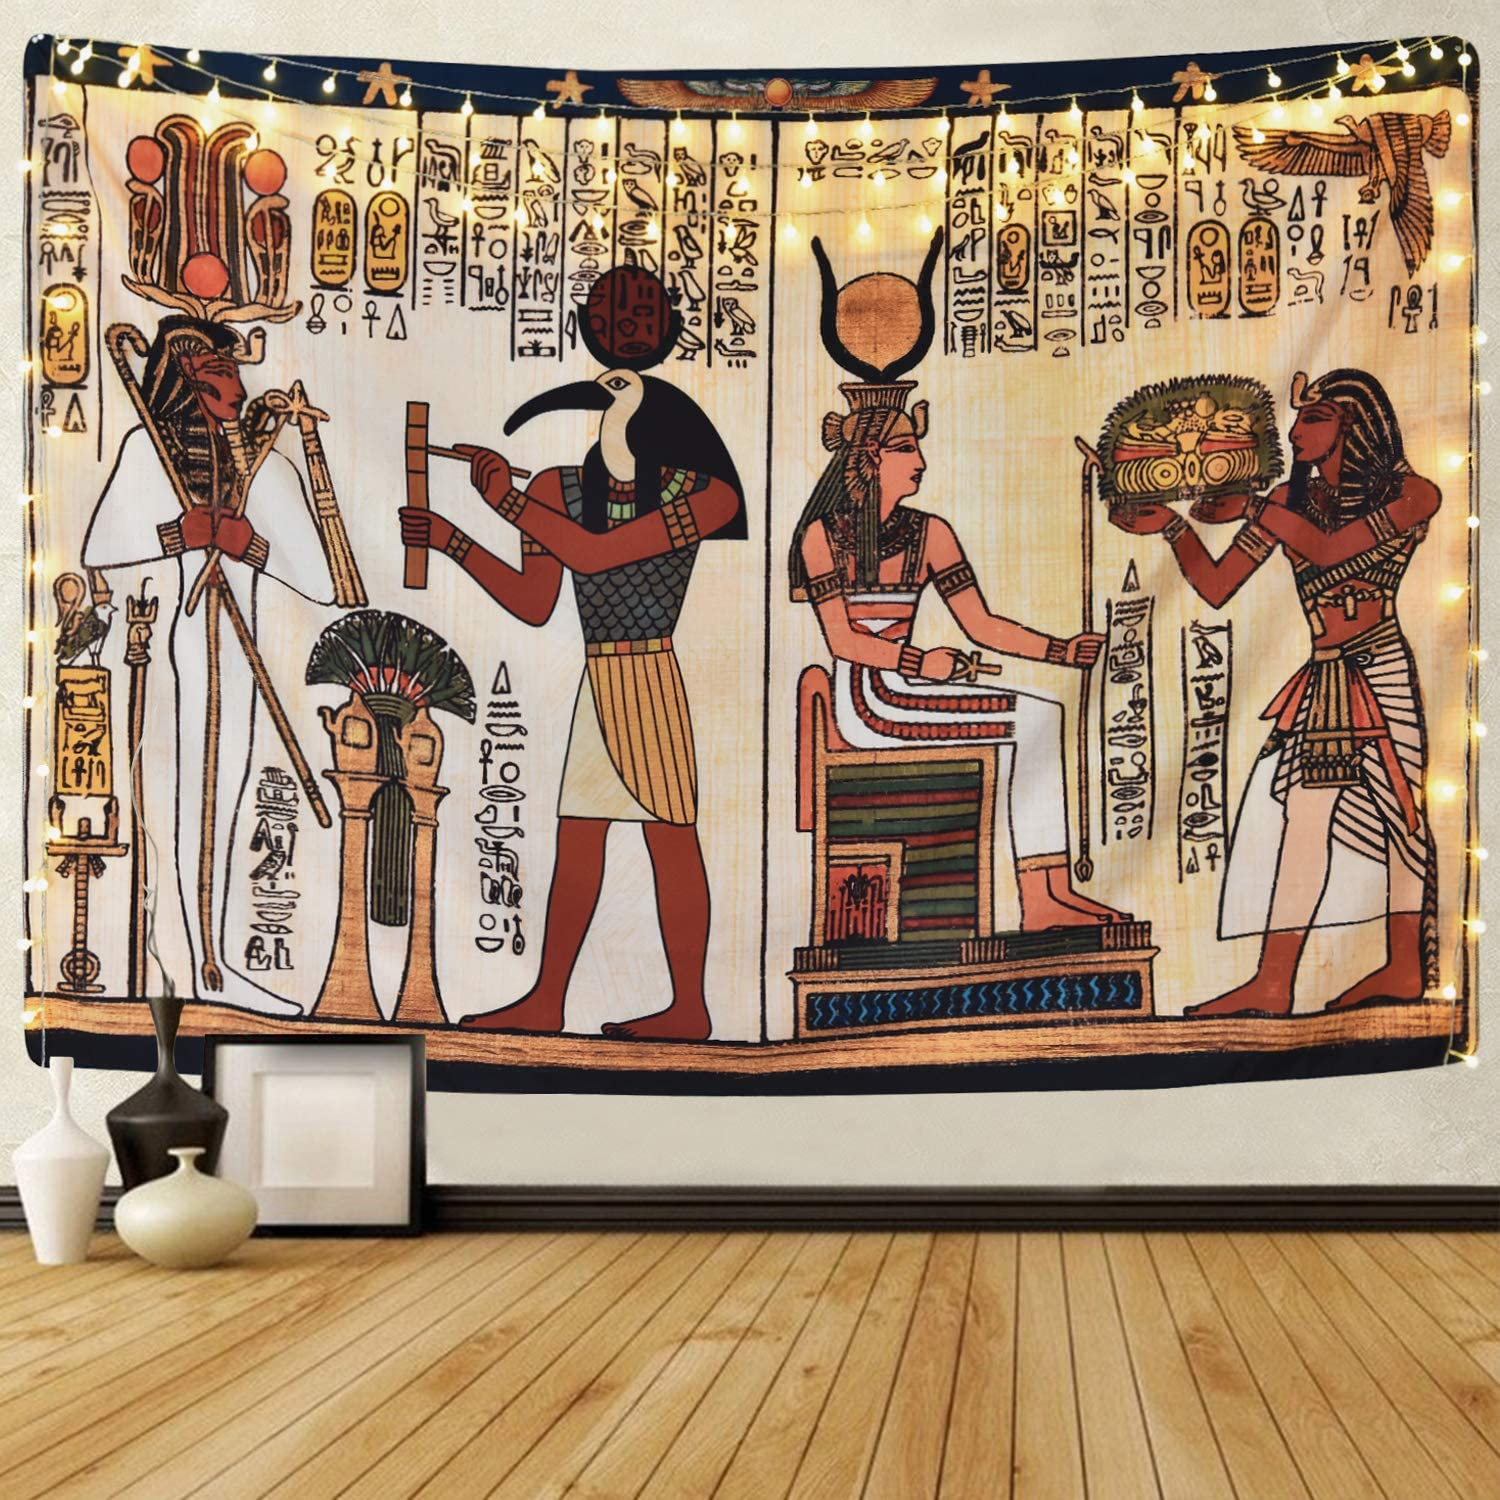 Sevenstars Egyptian Tapestry Ancient Egypt Mythology Tapestry Egyptian Gods Pharaohs Hieroglyphic Carvings Tapestries for Room